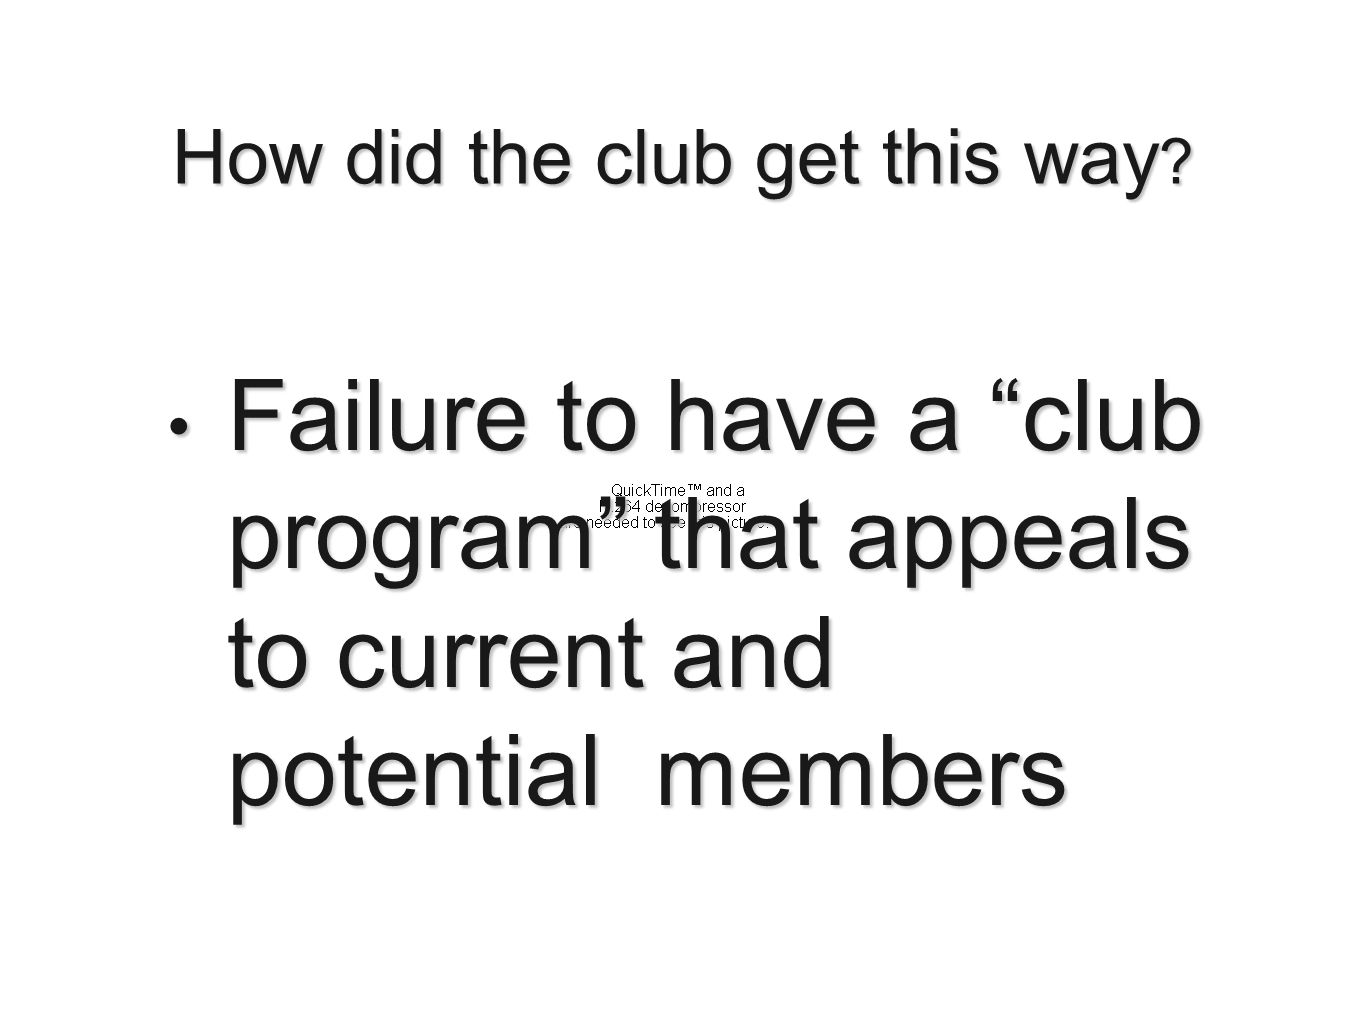 Failure to have a club program that appeals to current and potential members Failure to have a club program that appeals to current and potential members How did the club get this way